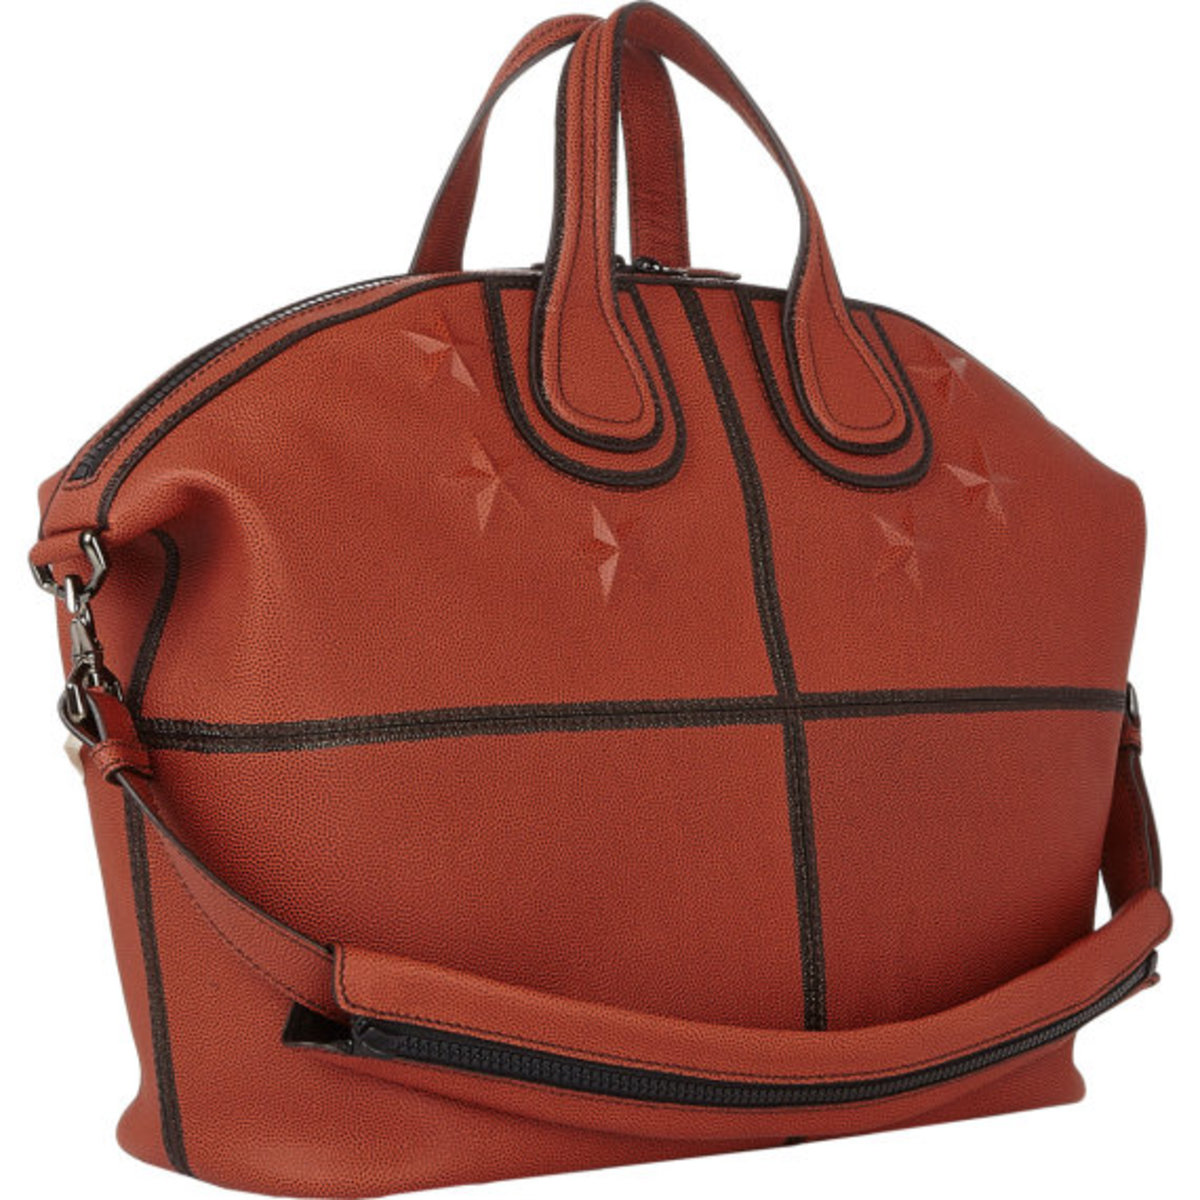 GIVENCHY - Star-Studded Nightingale Tote in Basketball Leather - 2